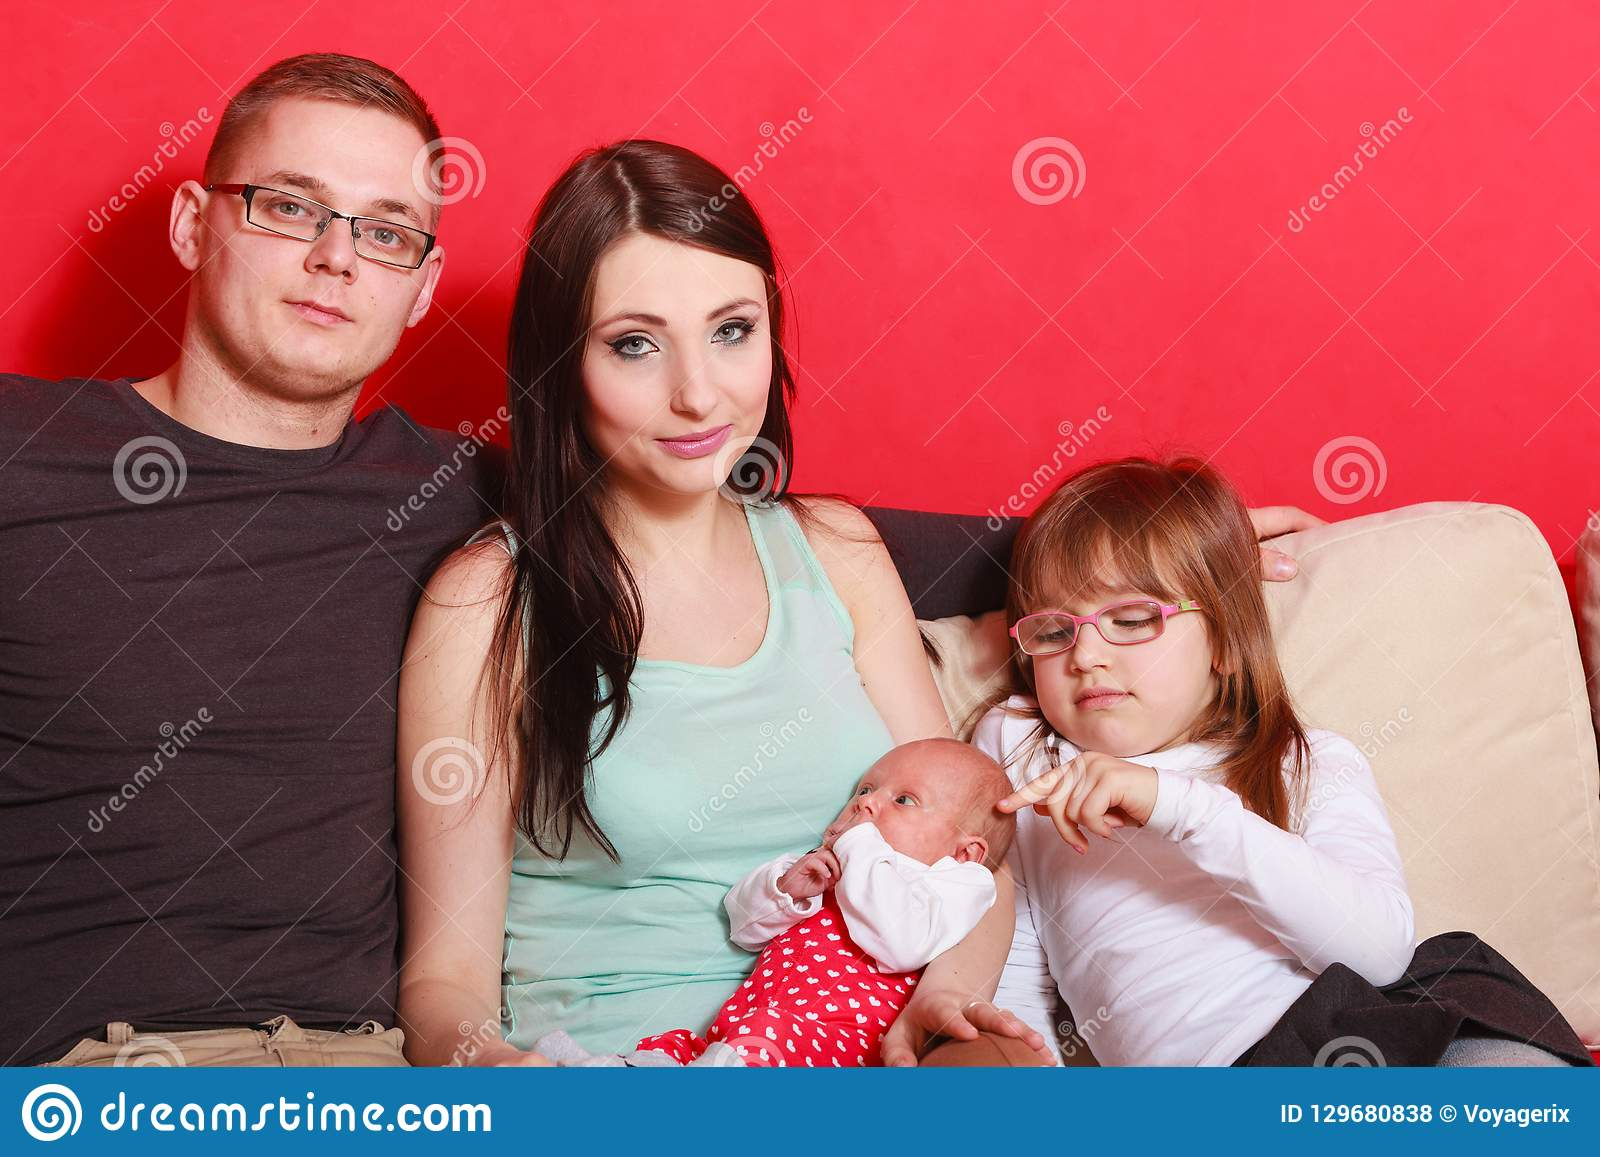 Family Photo Of Mother Baby Daughter And Father Stock